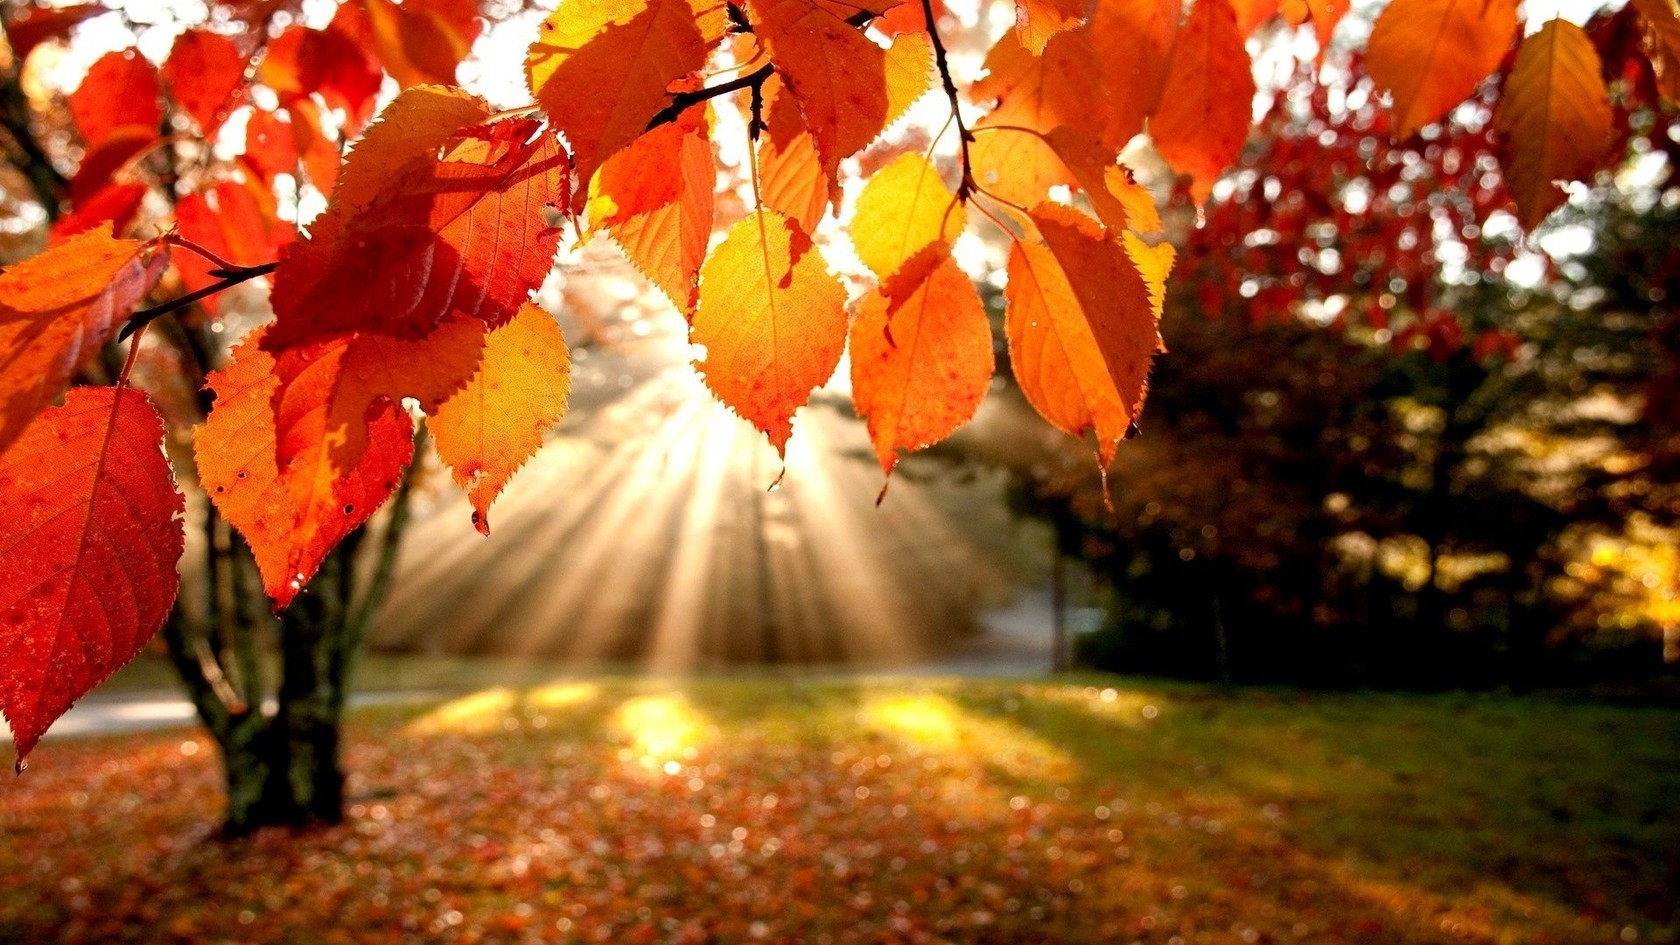 http://all4desktop.com/data_images/original/4245382-autumn.jpg